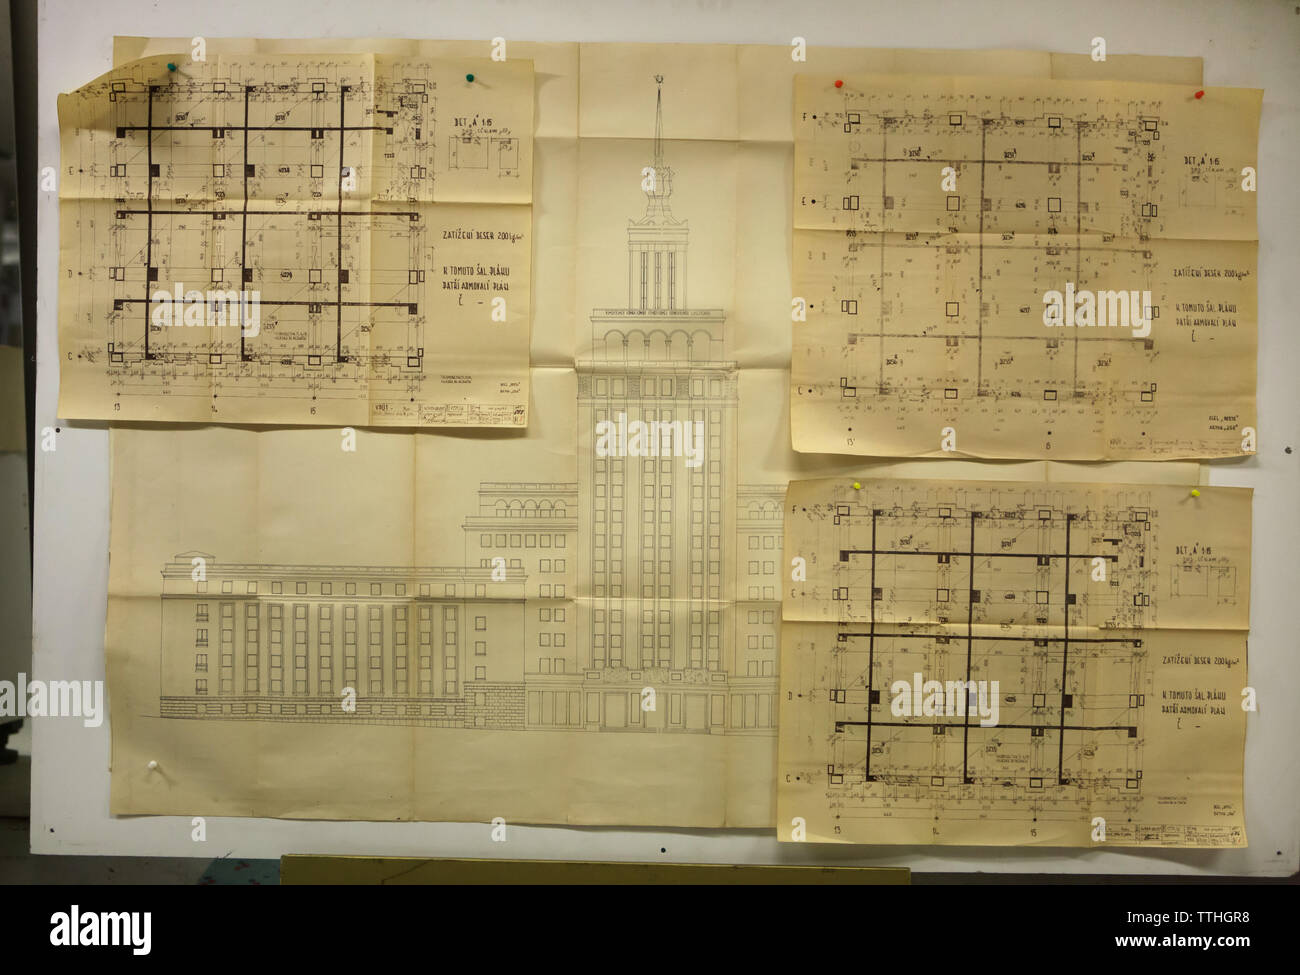 Original drafts of the Hotel International on display in basement of the Hotel International in Dejvice district in Prague, Czech Republic. The hotel inspired by Soviet Stalinist architecture was designed by Czech architect František Jeřábek and built in 1952-1956. Stock Photo